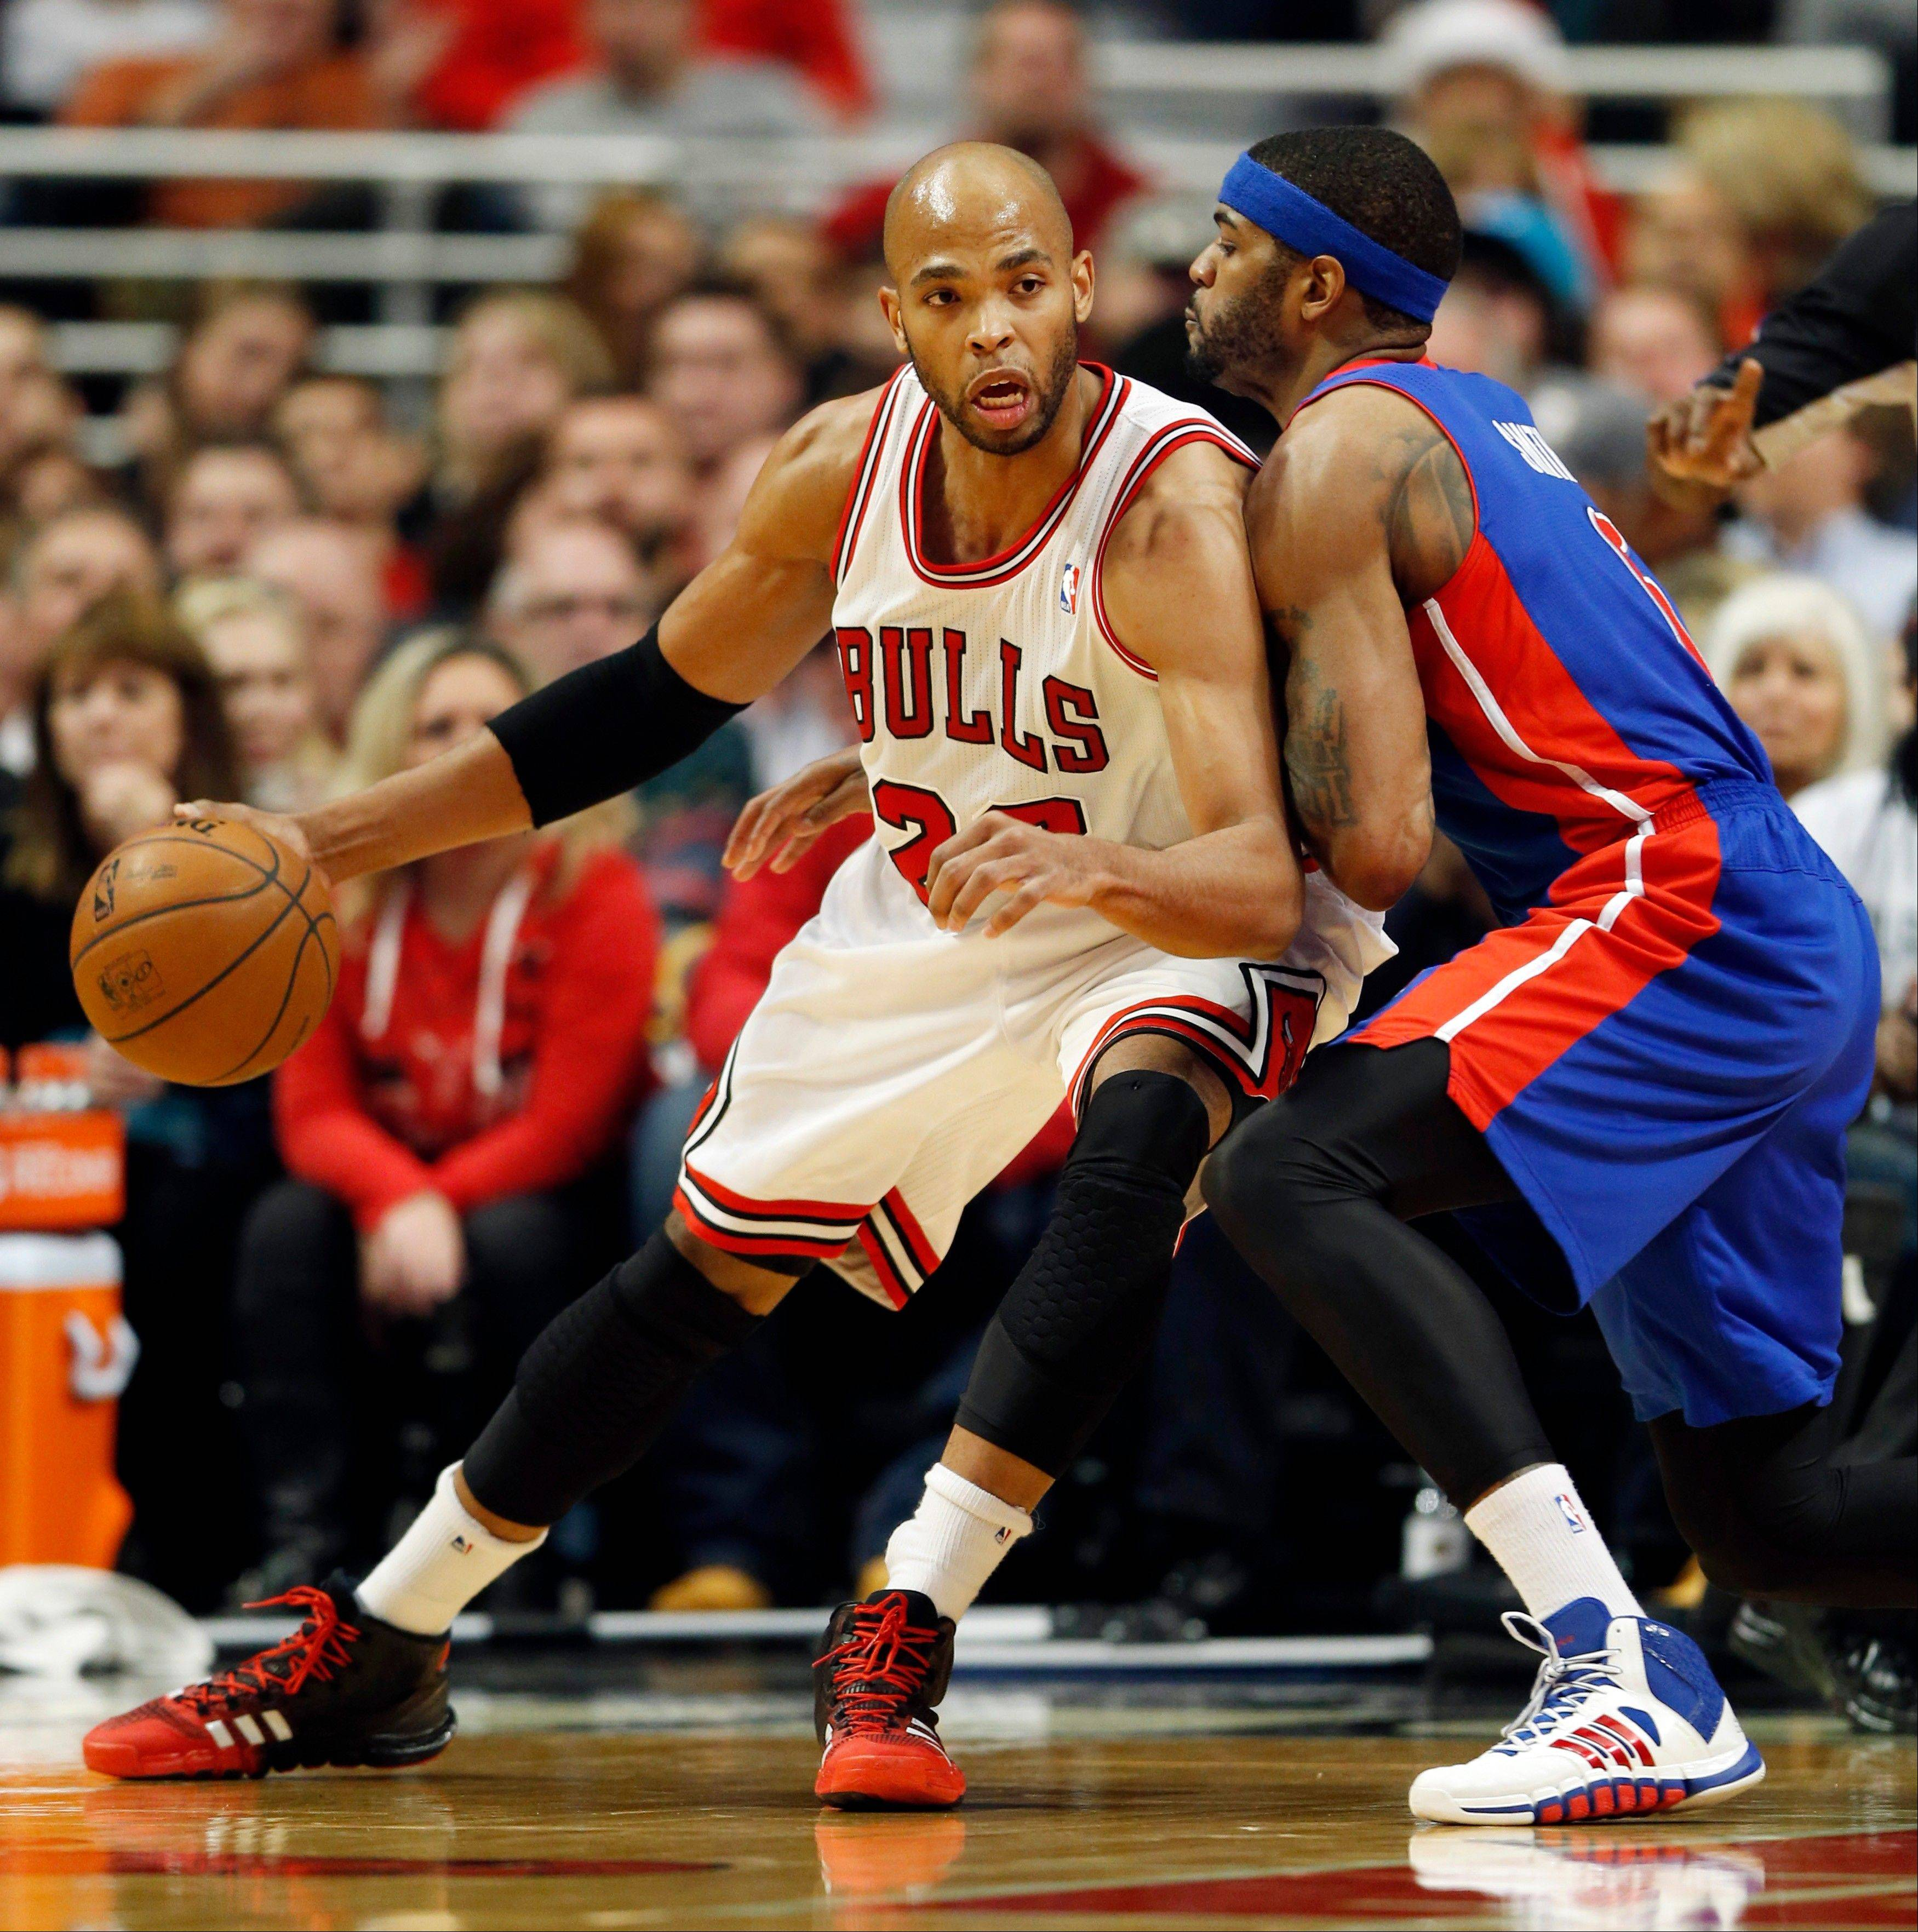 Detroit Pistons forward Josh Smith, right, defends against Bulls forward Taj Gibson on Saturday night at the United Center.